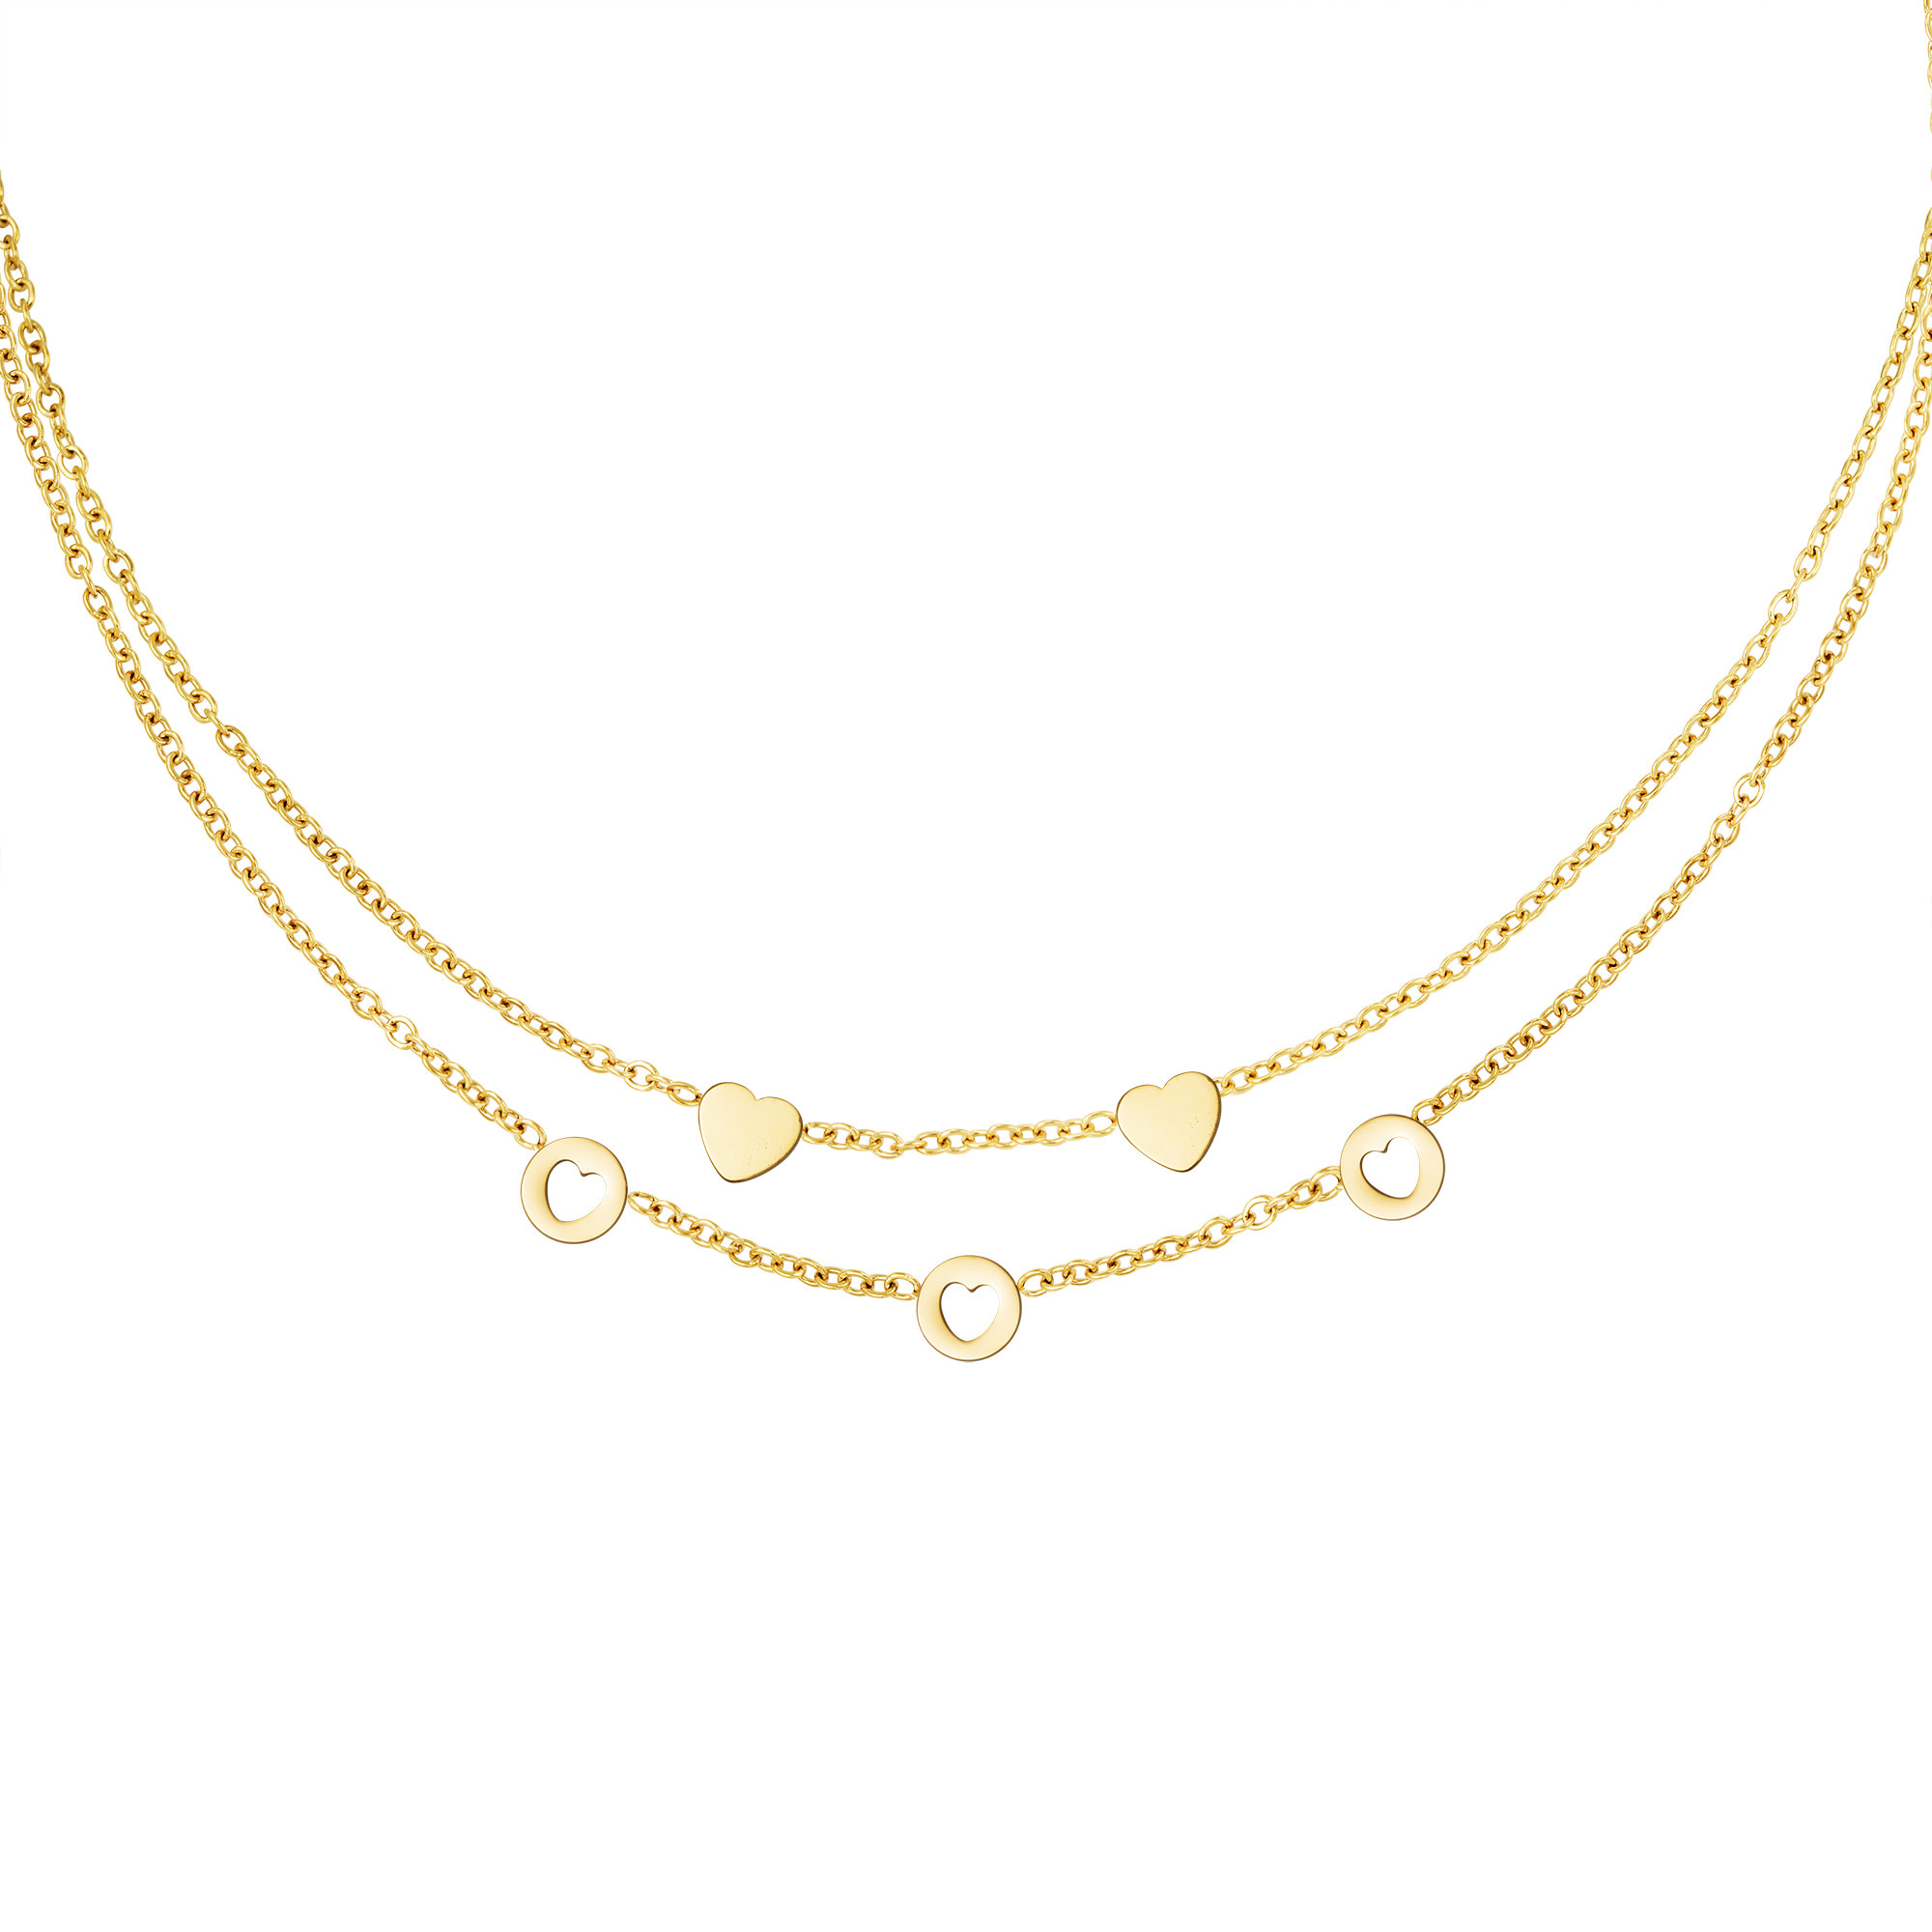 With love Necklace romance gold